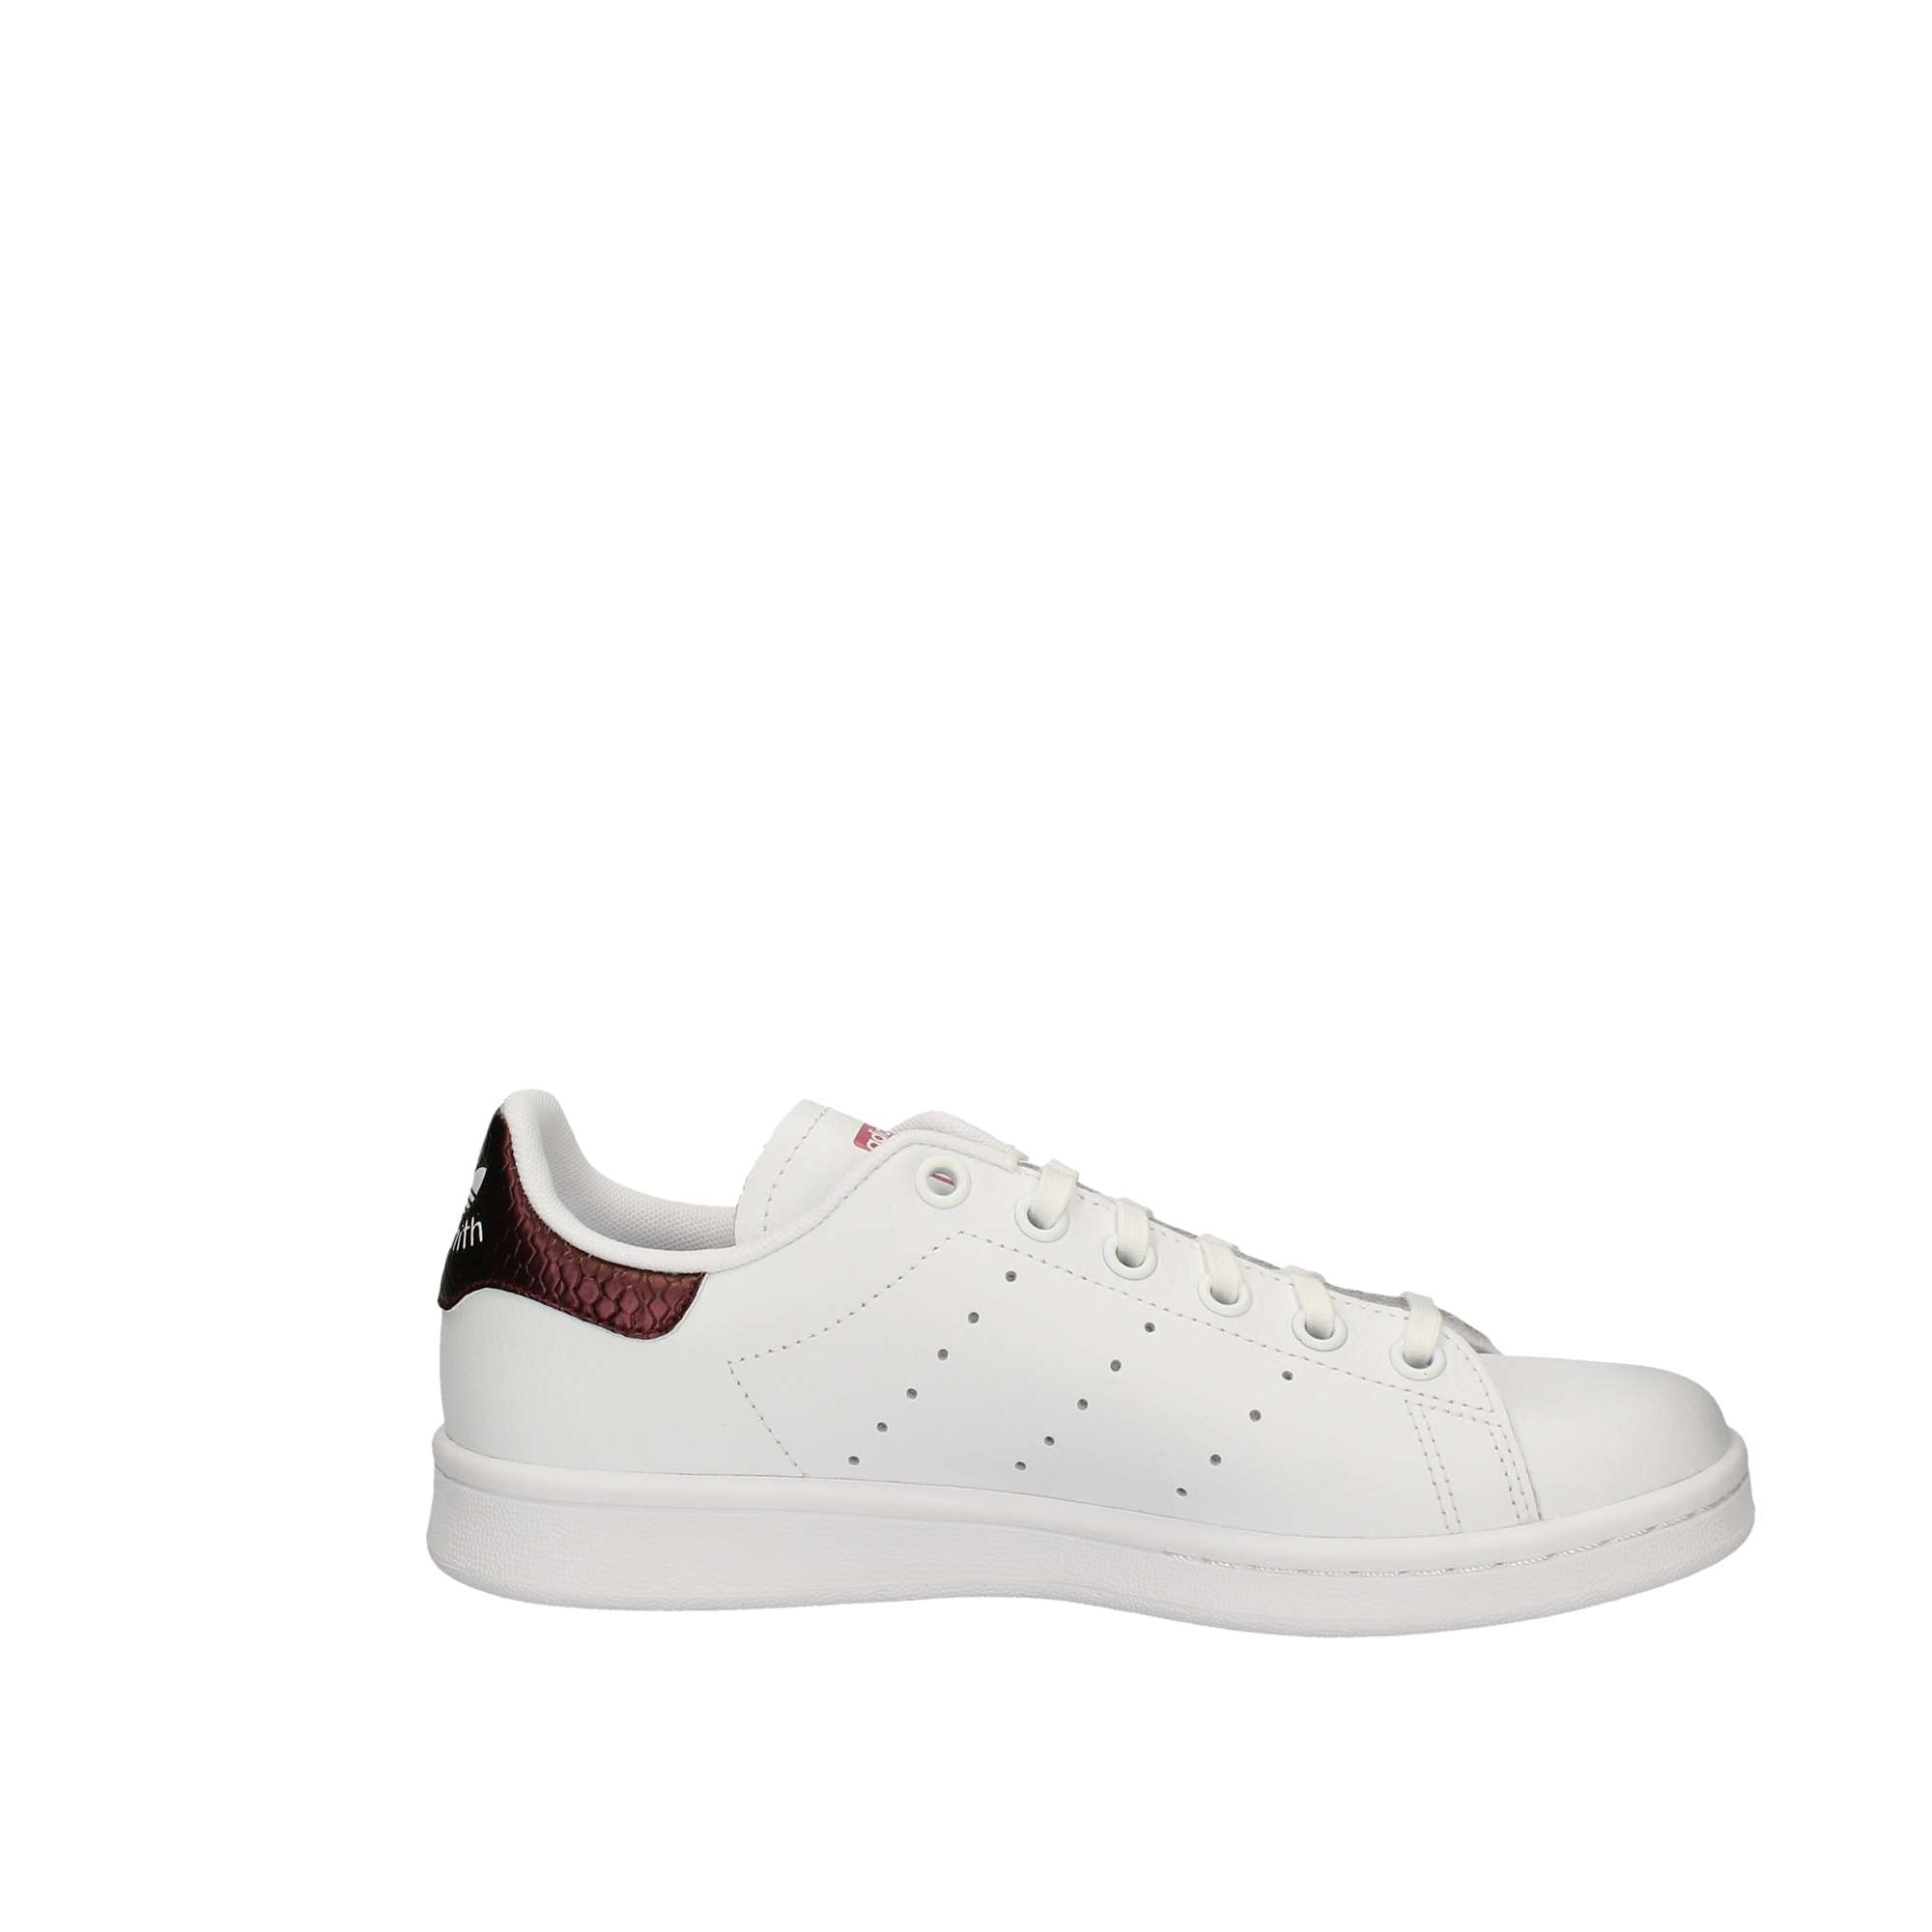 Autunno Sneakers Adidas Unisex inverno Bianco Ecopelle B37186 AwnZnqWFIO